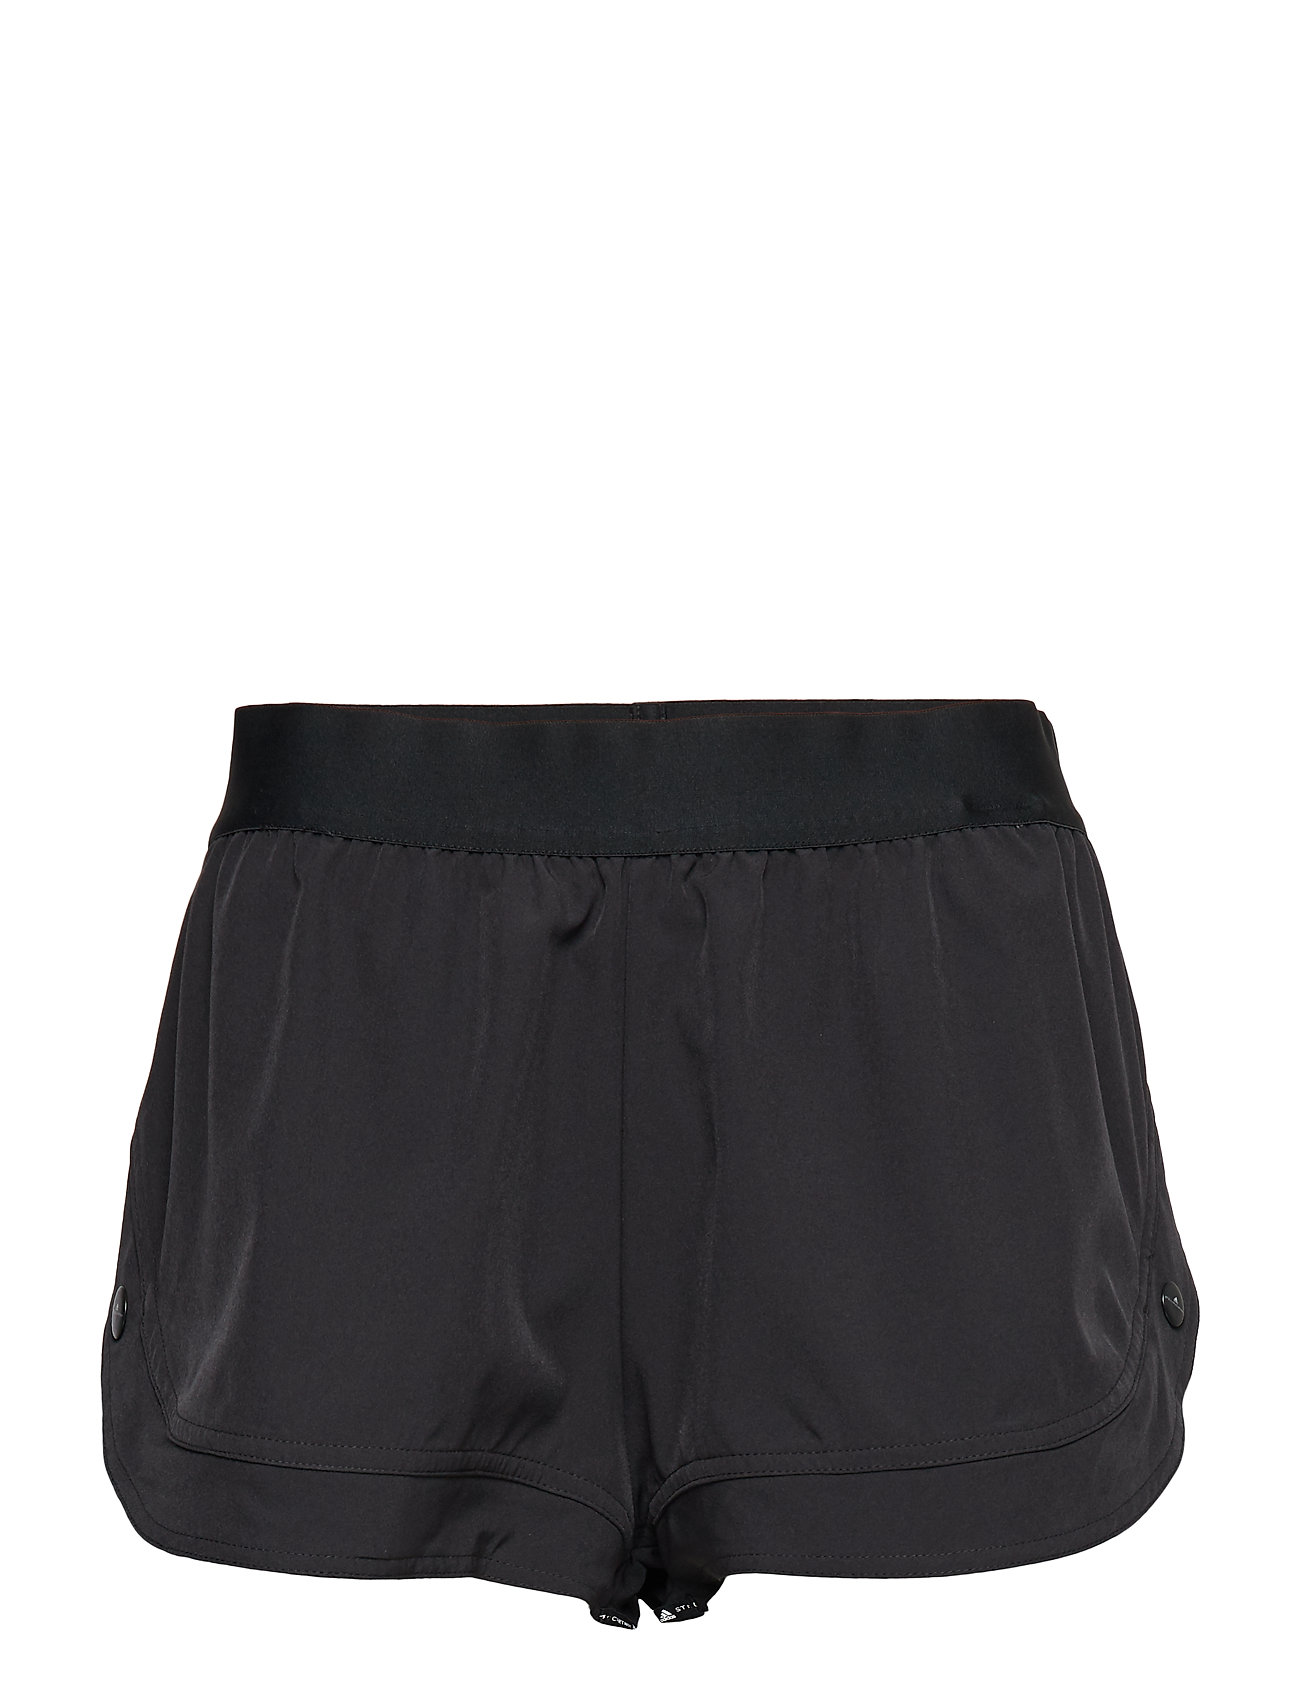 Adidas by Stella McCartney P ESS SHORT Shorts